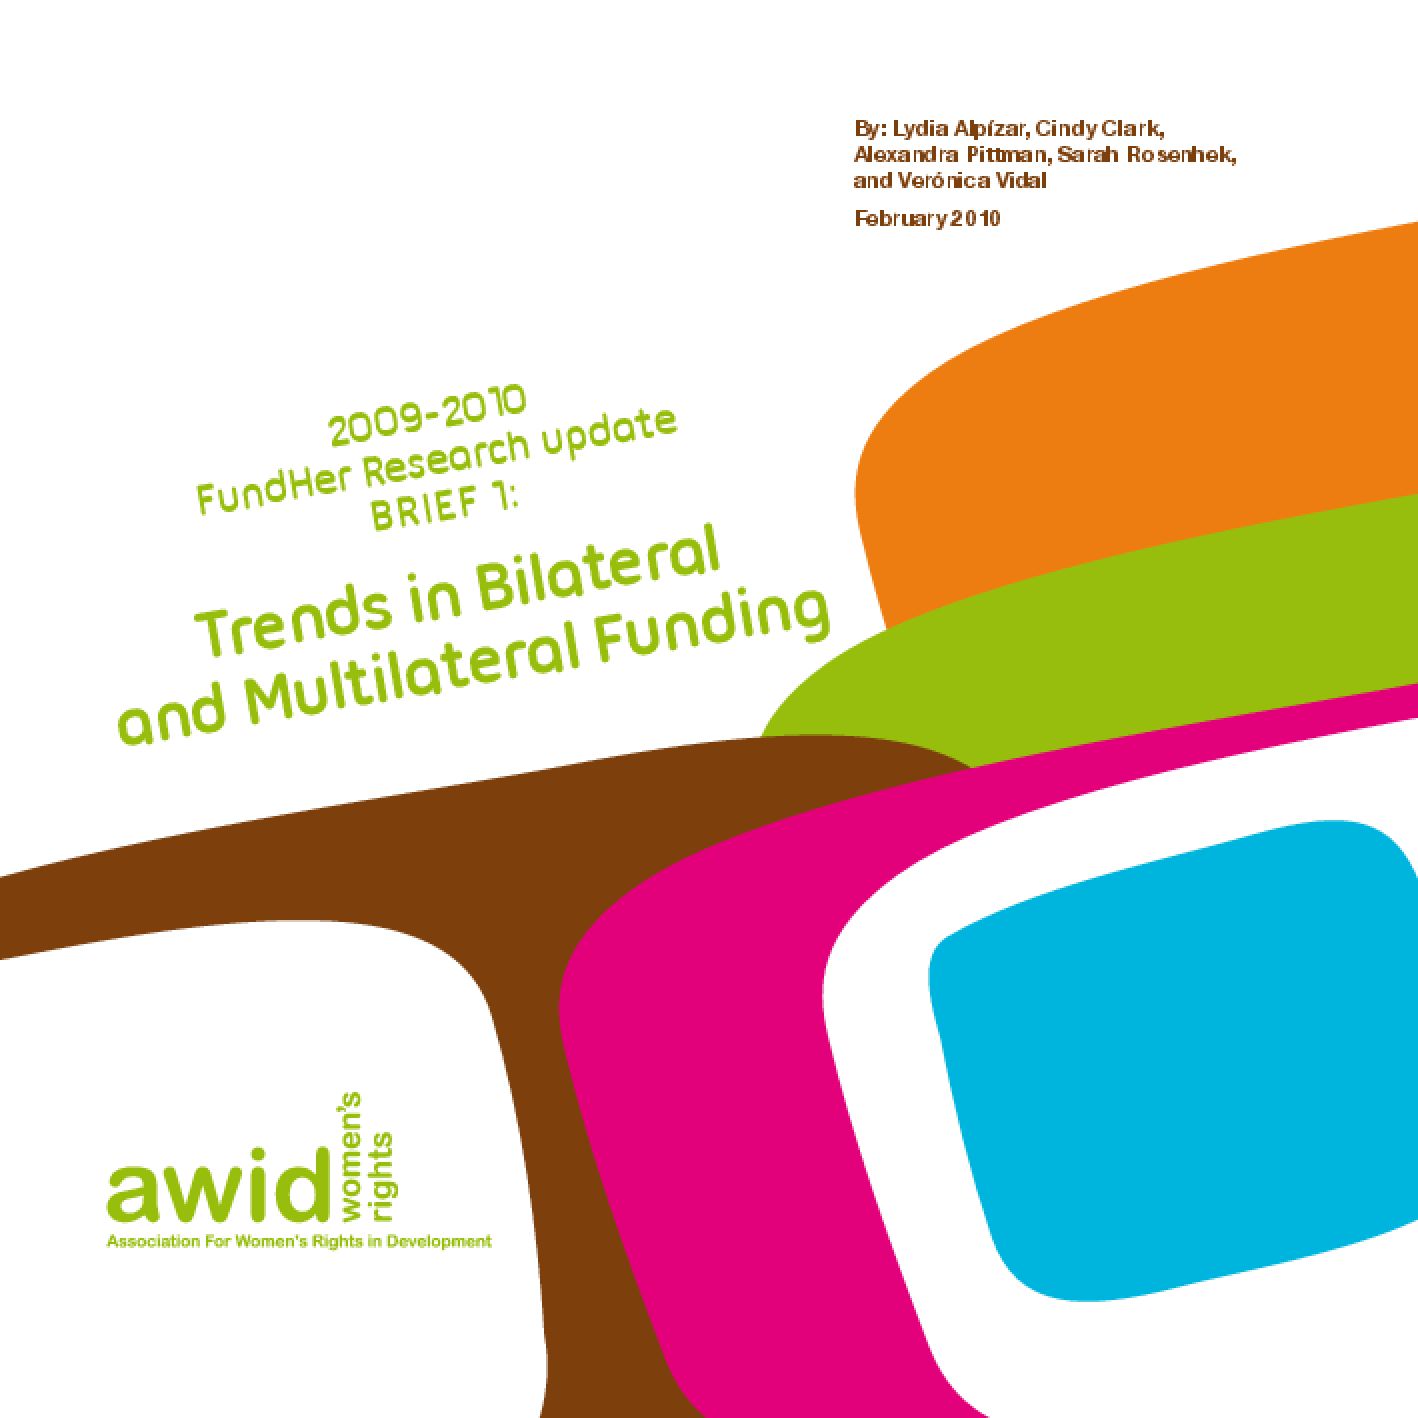 Trends in Bilateral and Multilateral Funding